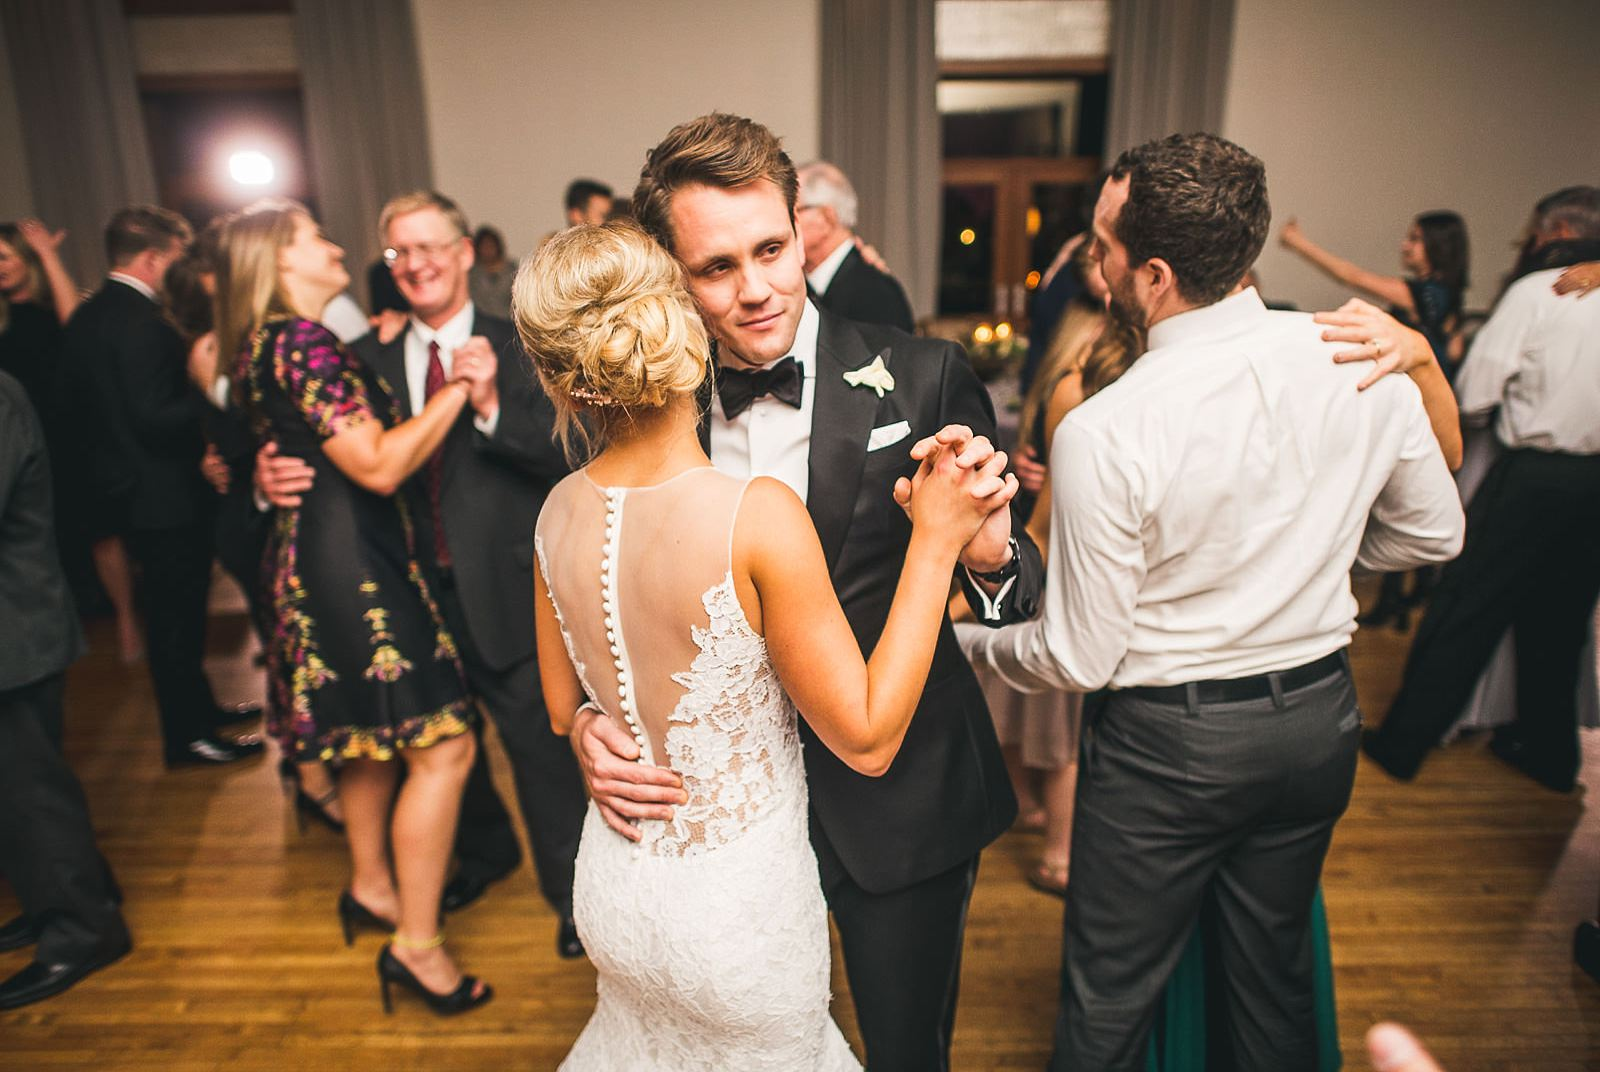 73 ivy room wedding photos - Ivy Room Wedding // Audrey + Tyler